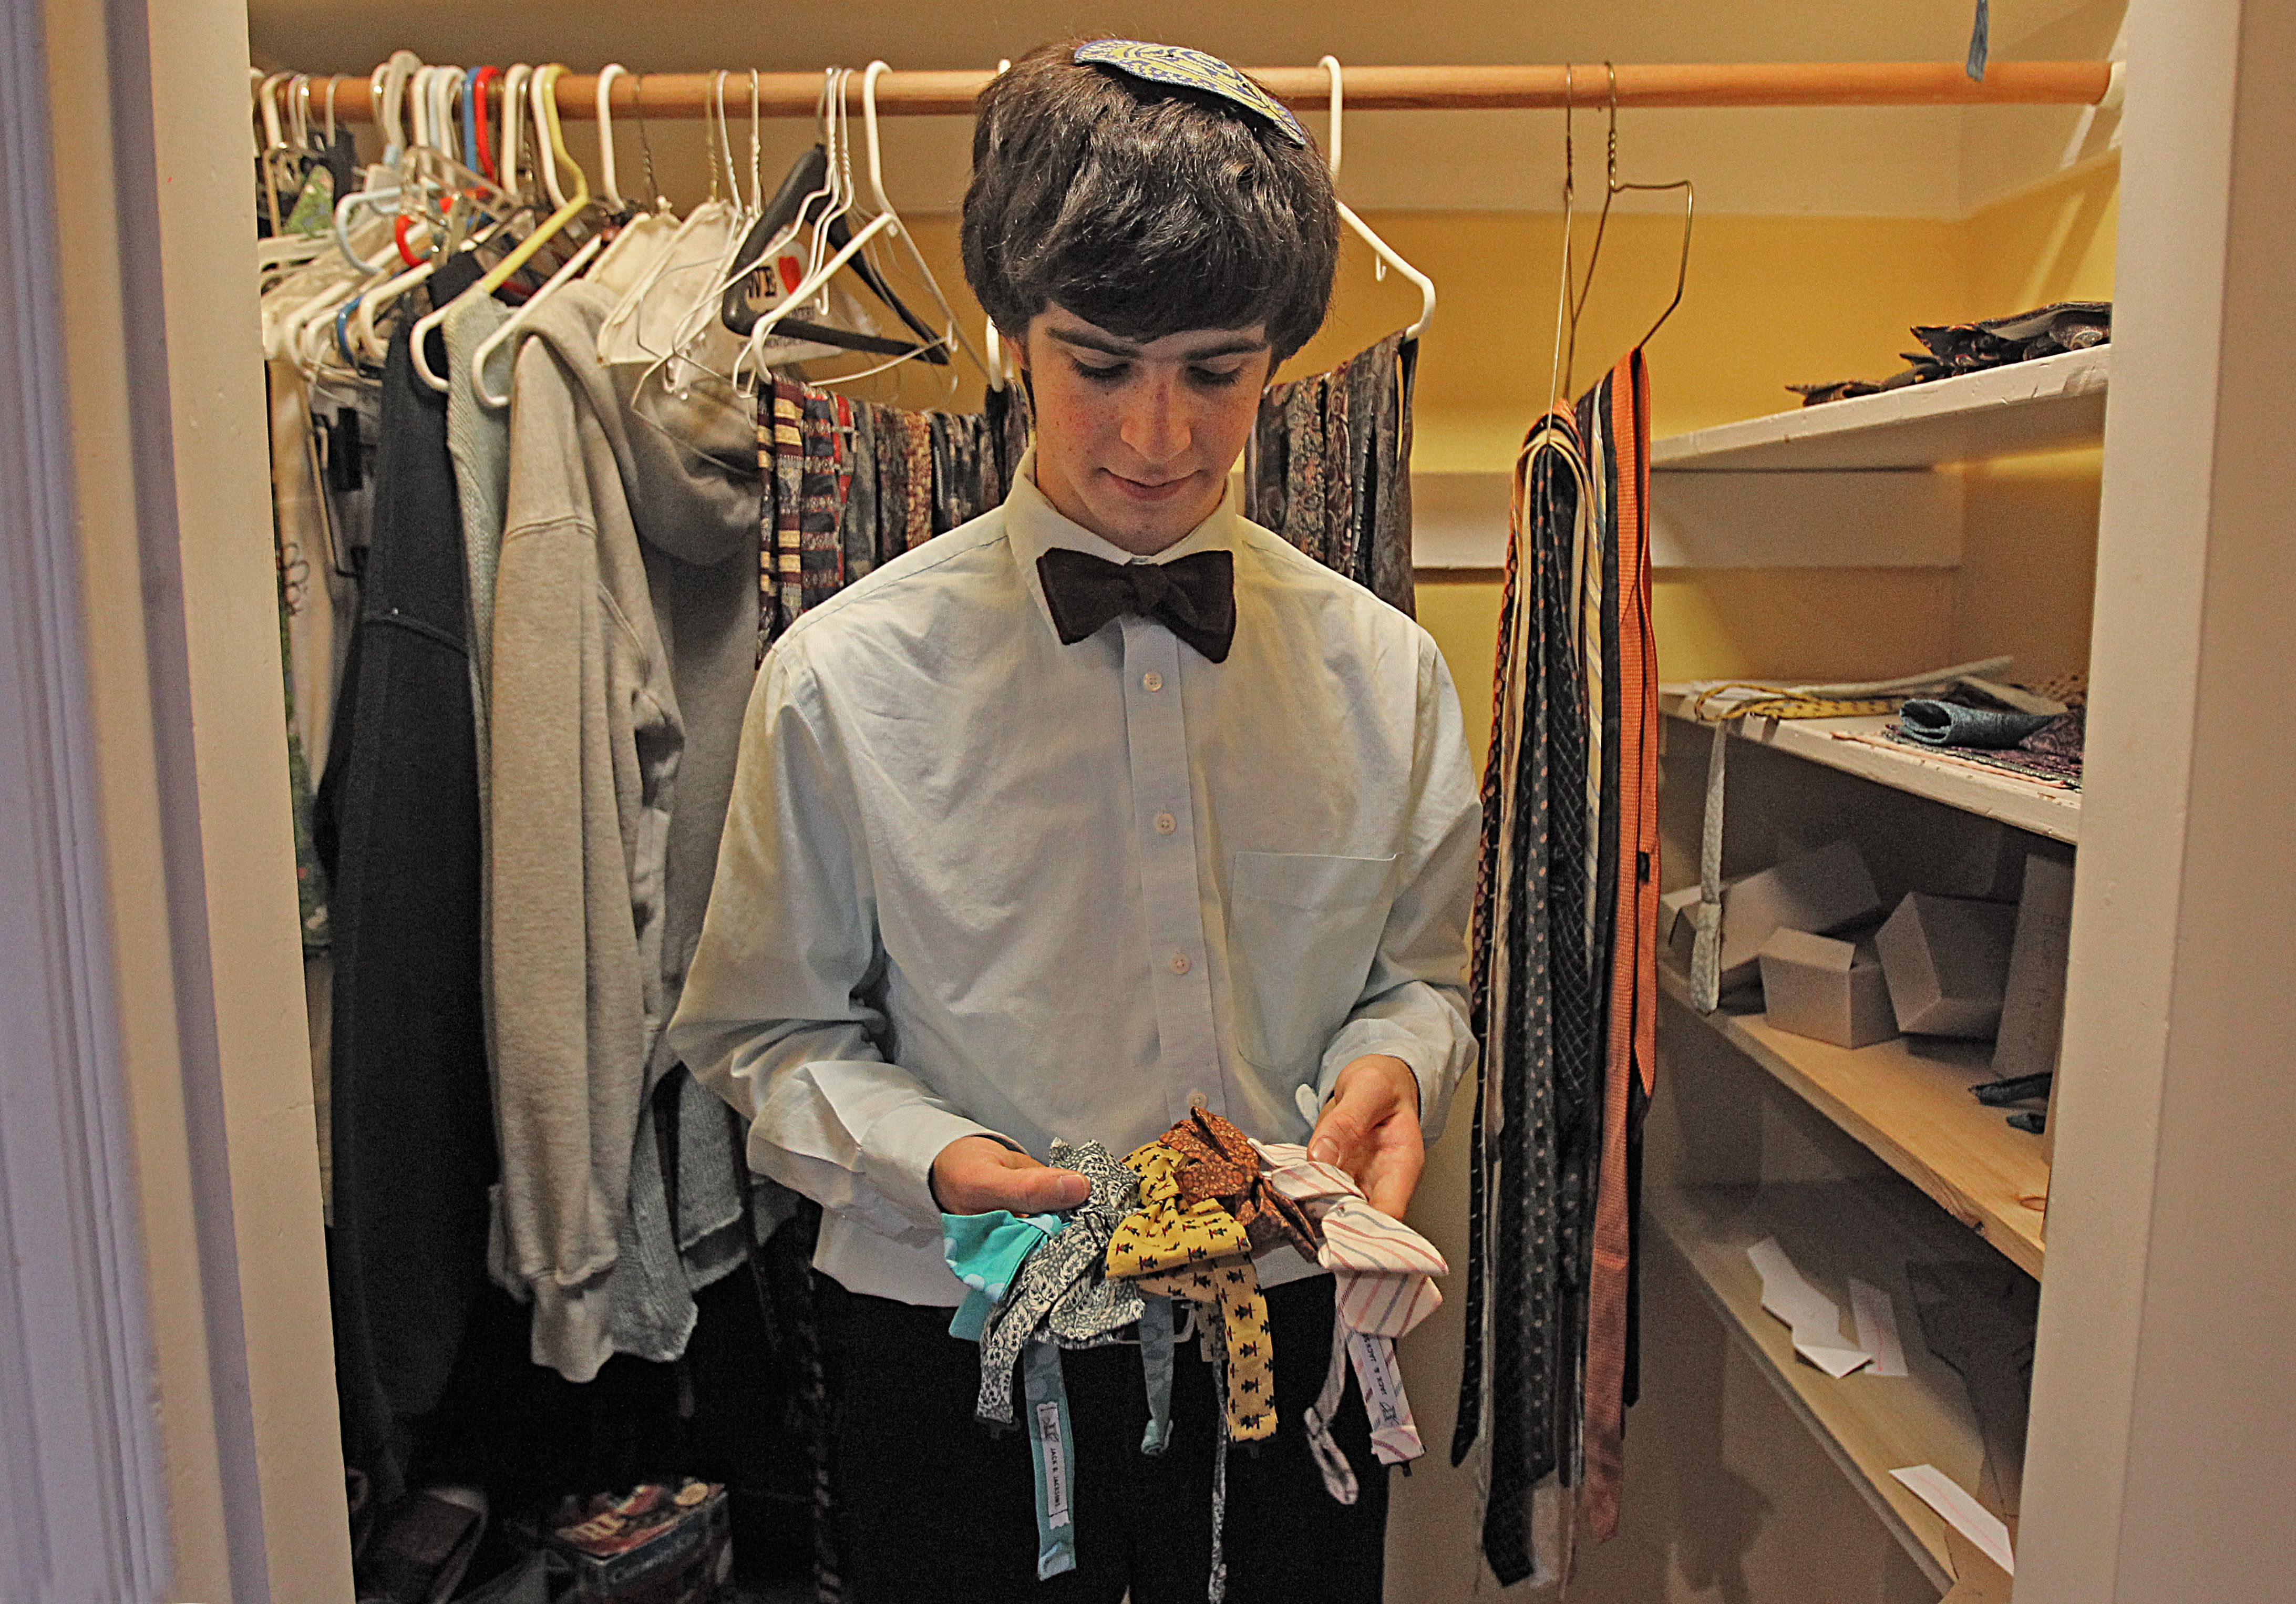 acd6c02a00f2 Teens' bow tie business blossoms - The Boston Globe